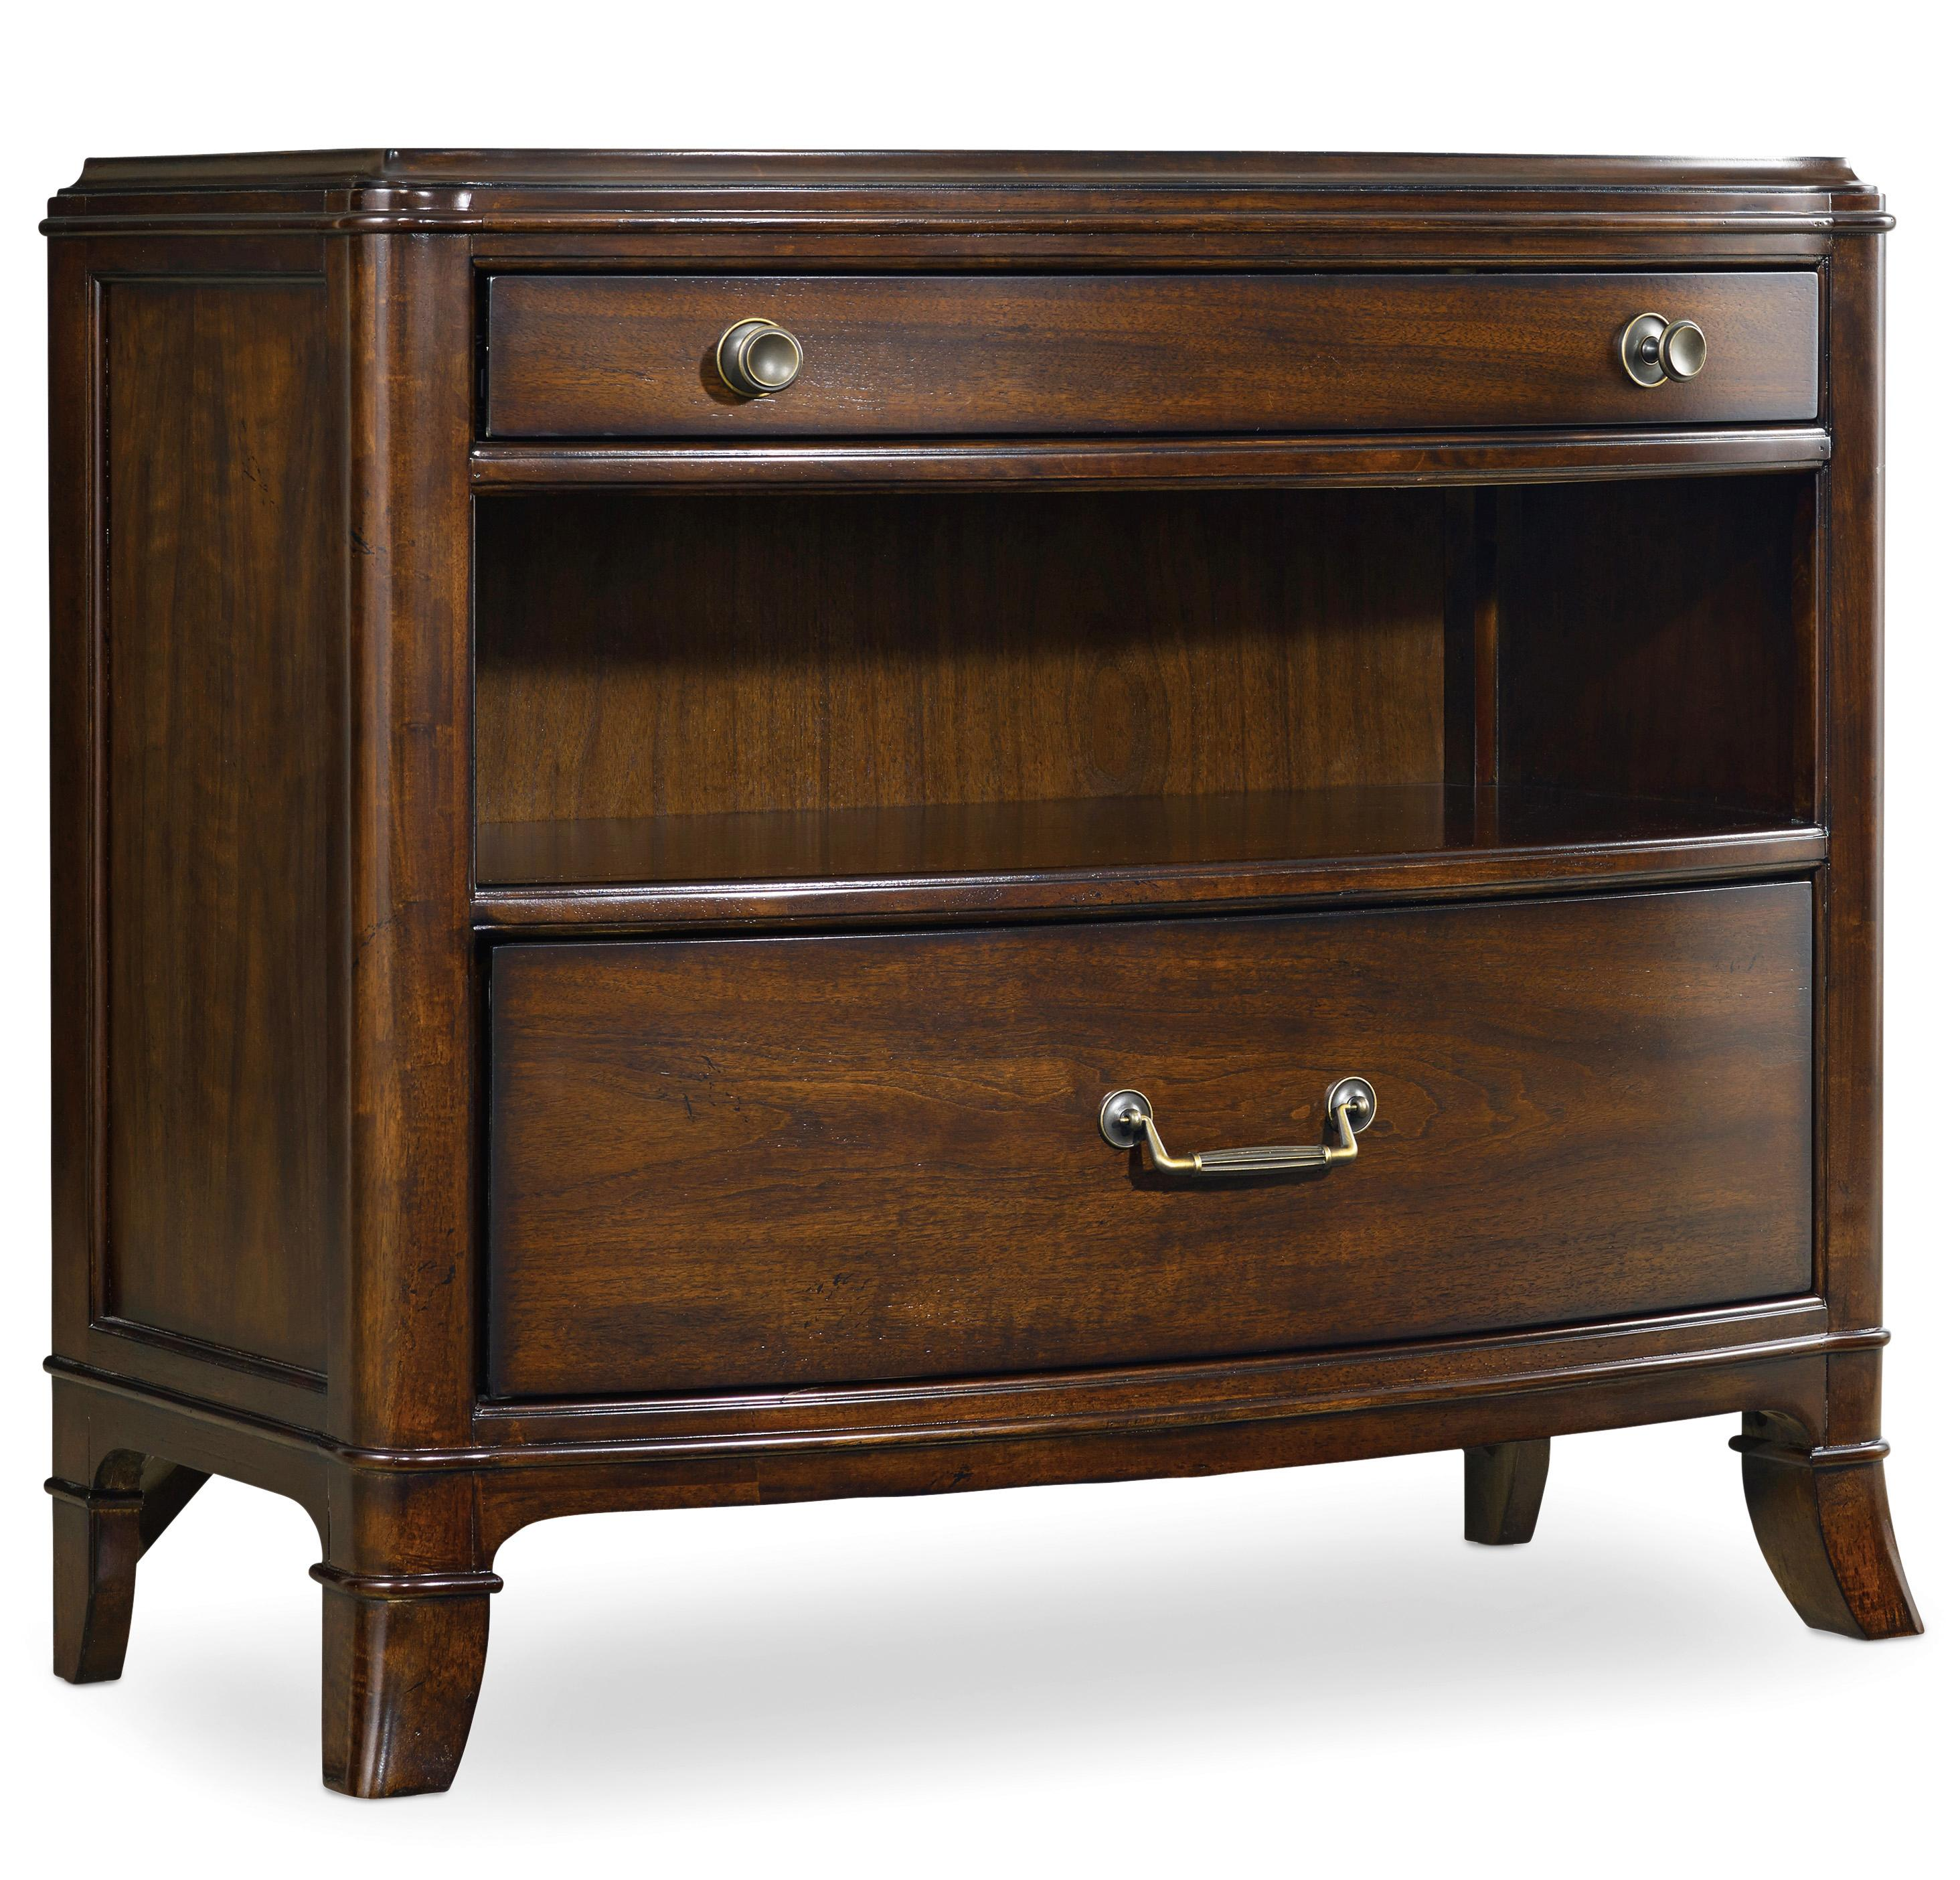 Hooker Furniture Palisade 2 Drawer Nightstand - Item Number: 5183-90116